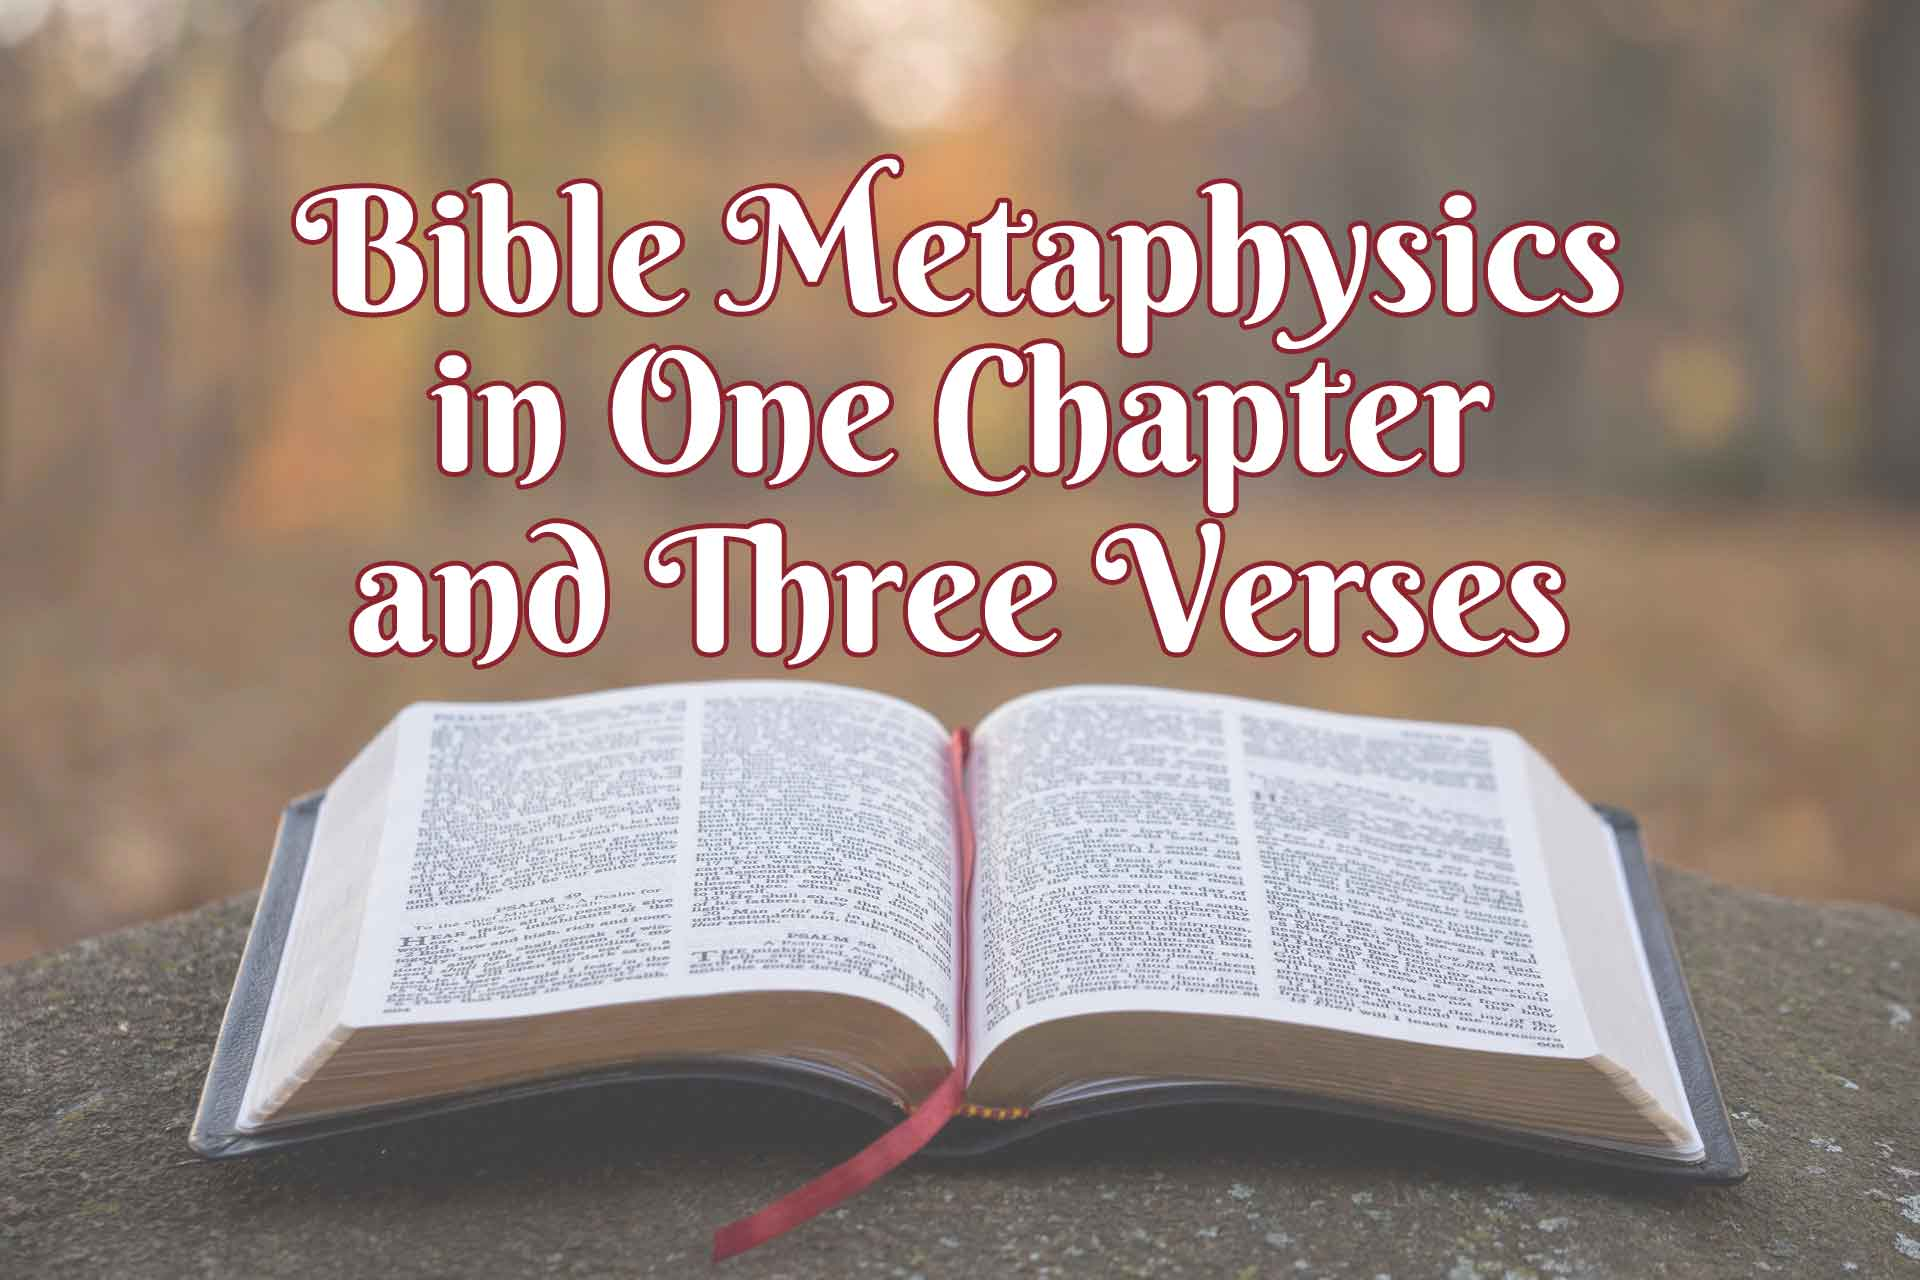 Bible Metaphysics in One Chapter and Three Verses